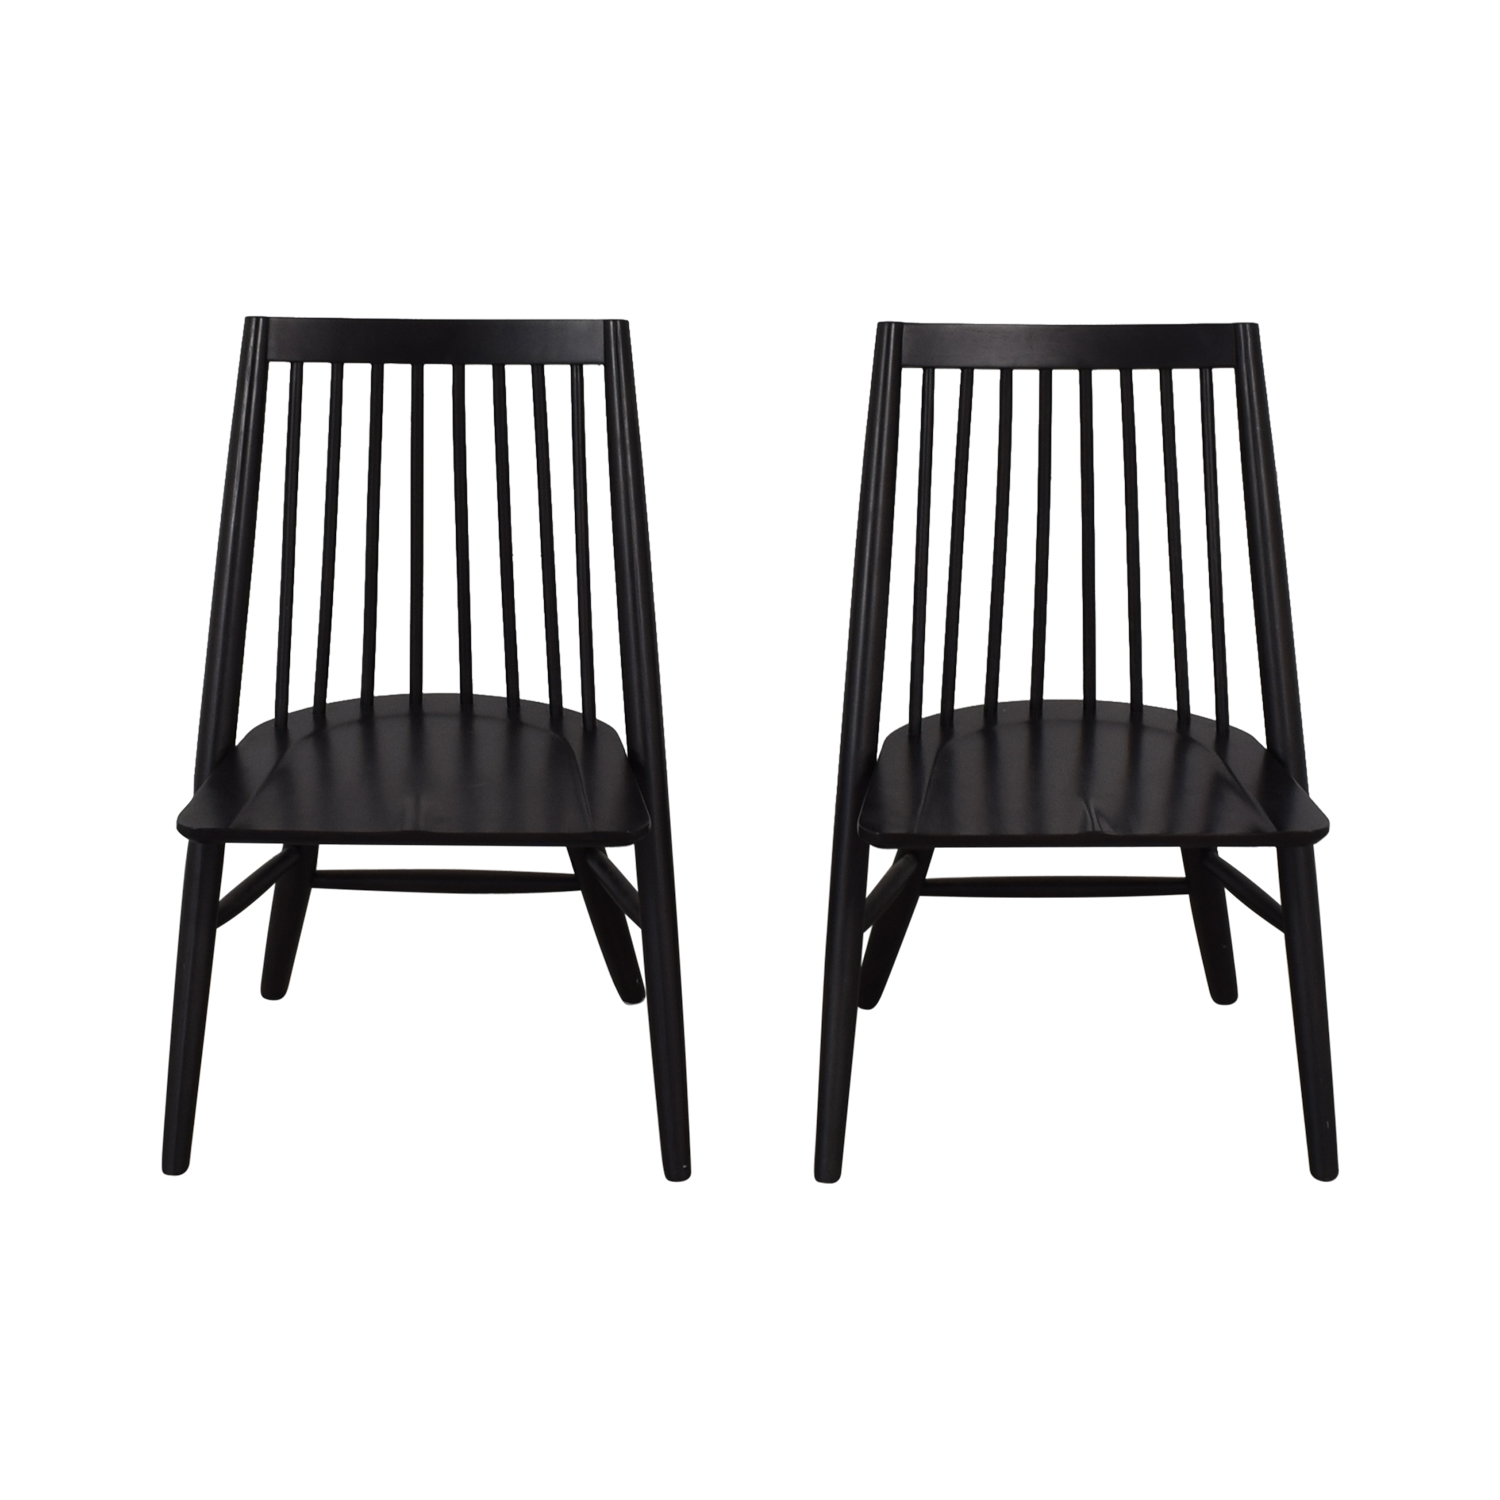 West Elm West Elm Black Spindle Chairs Chairs